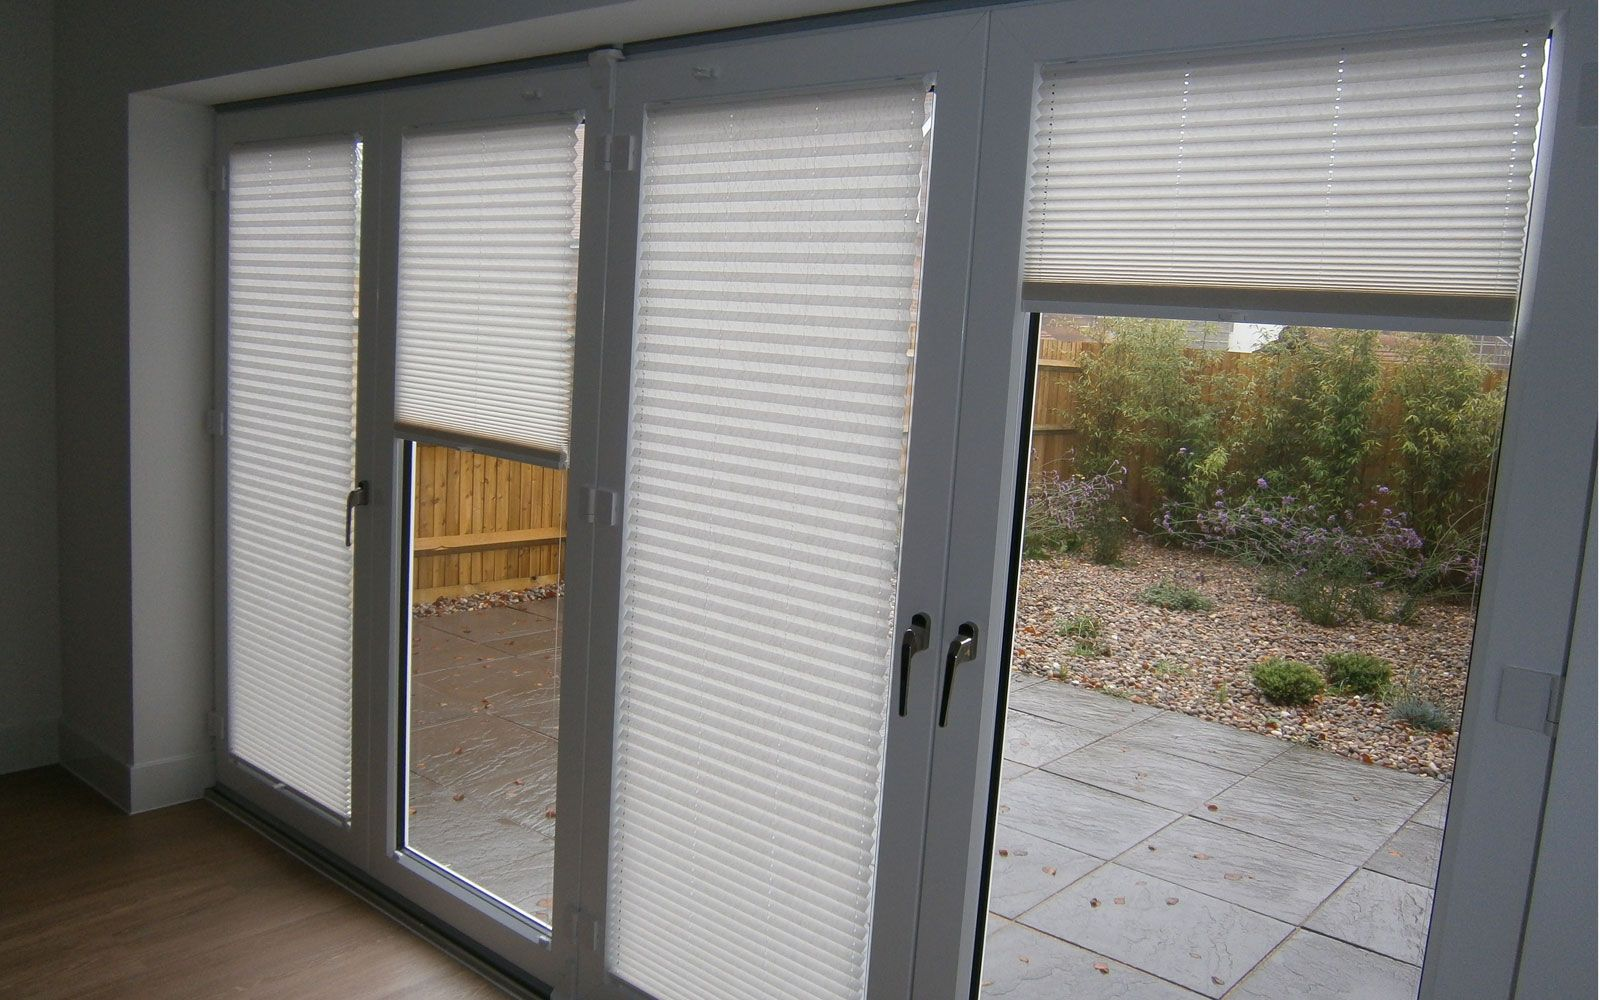 Gallery surrey blinds shutters house pinterest surrey patio door venetian blinds theres a broad range of patio doors of designs styles and choices to choose from for your ho planetlyrics Image collections